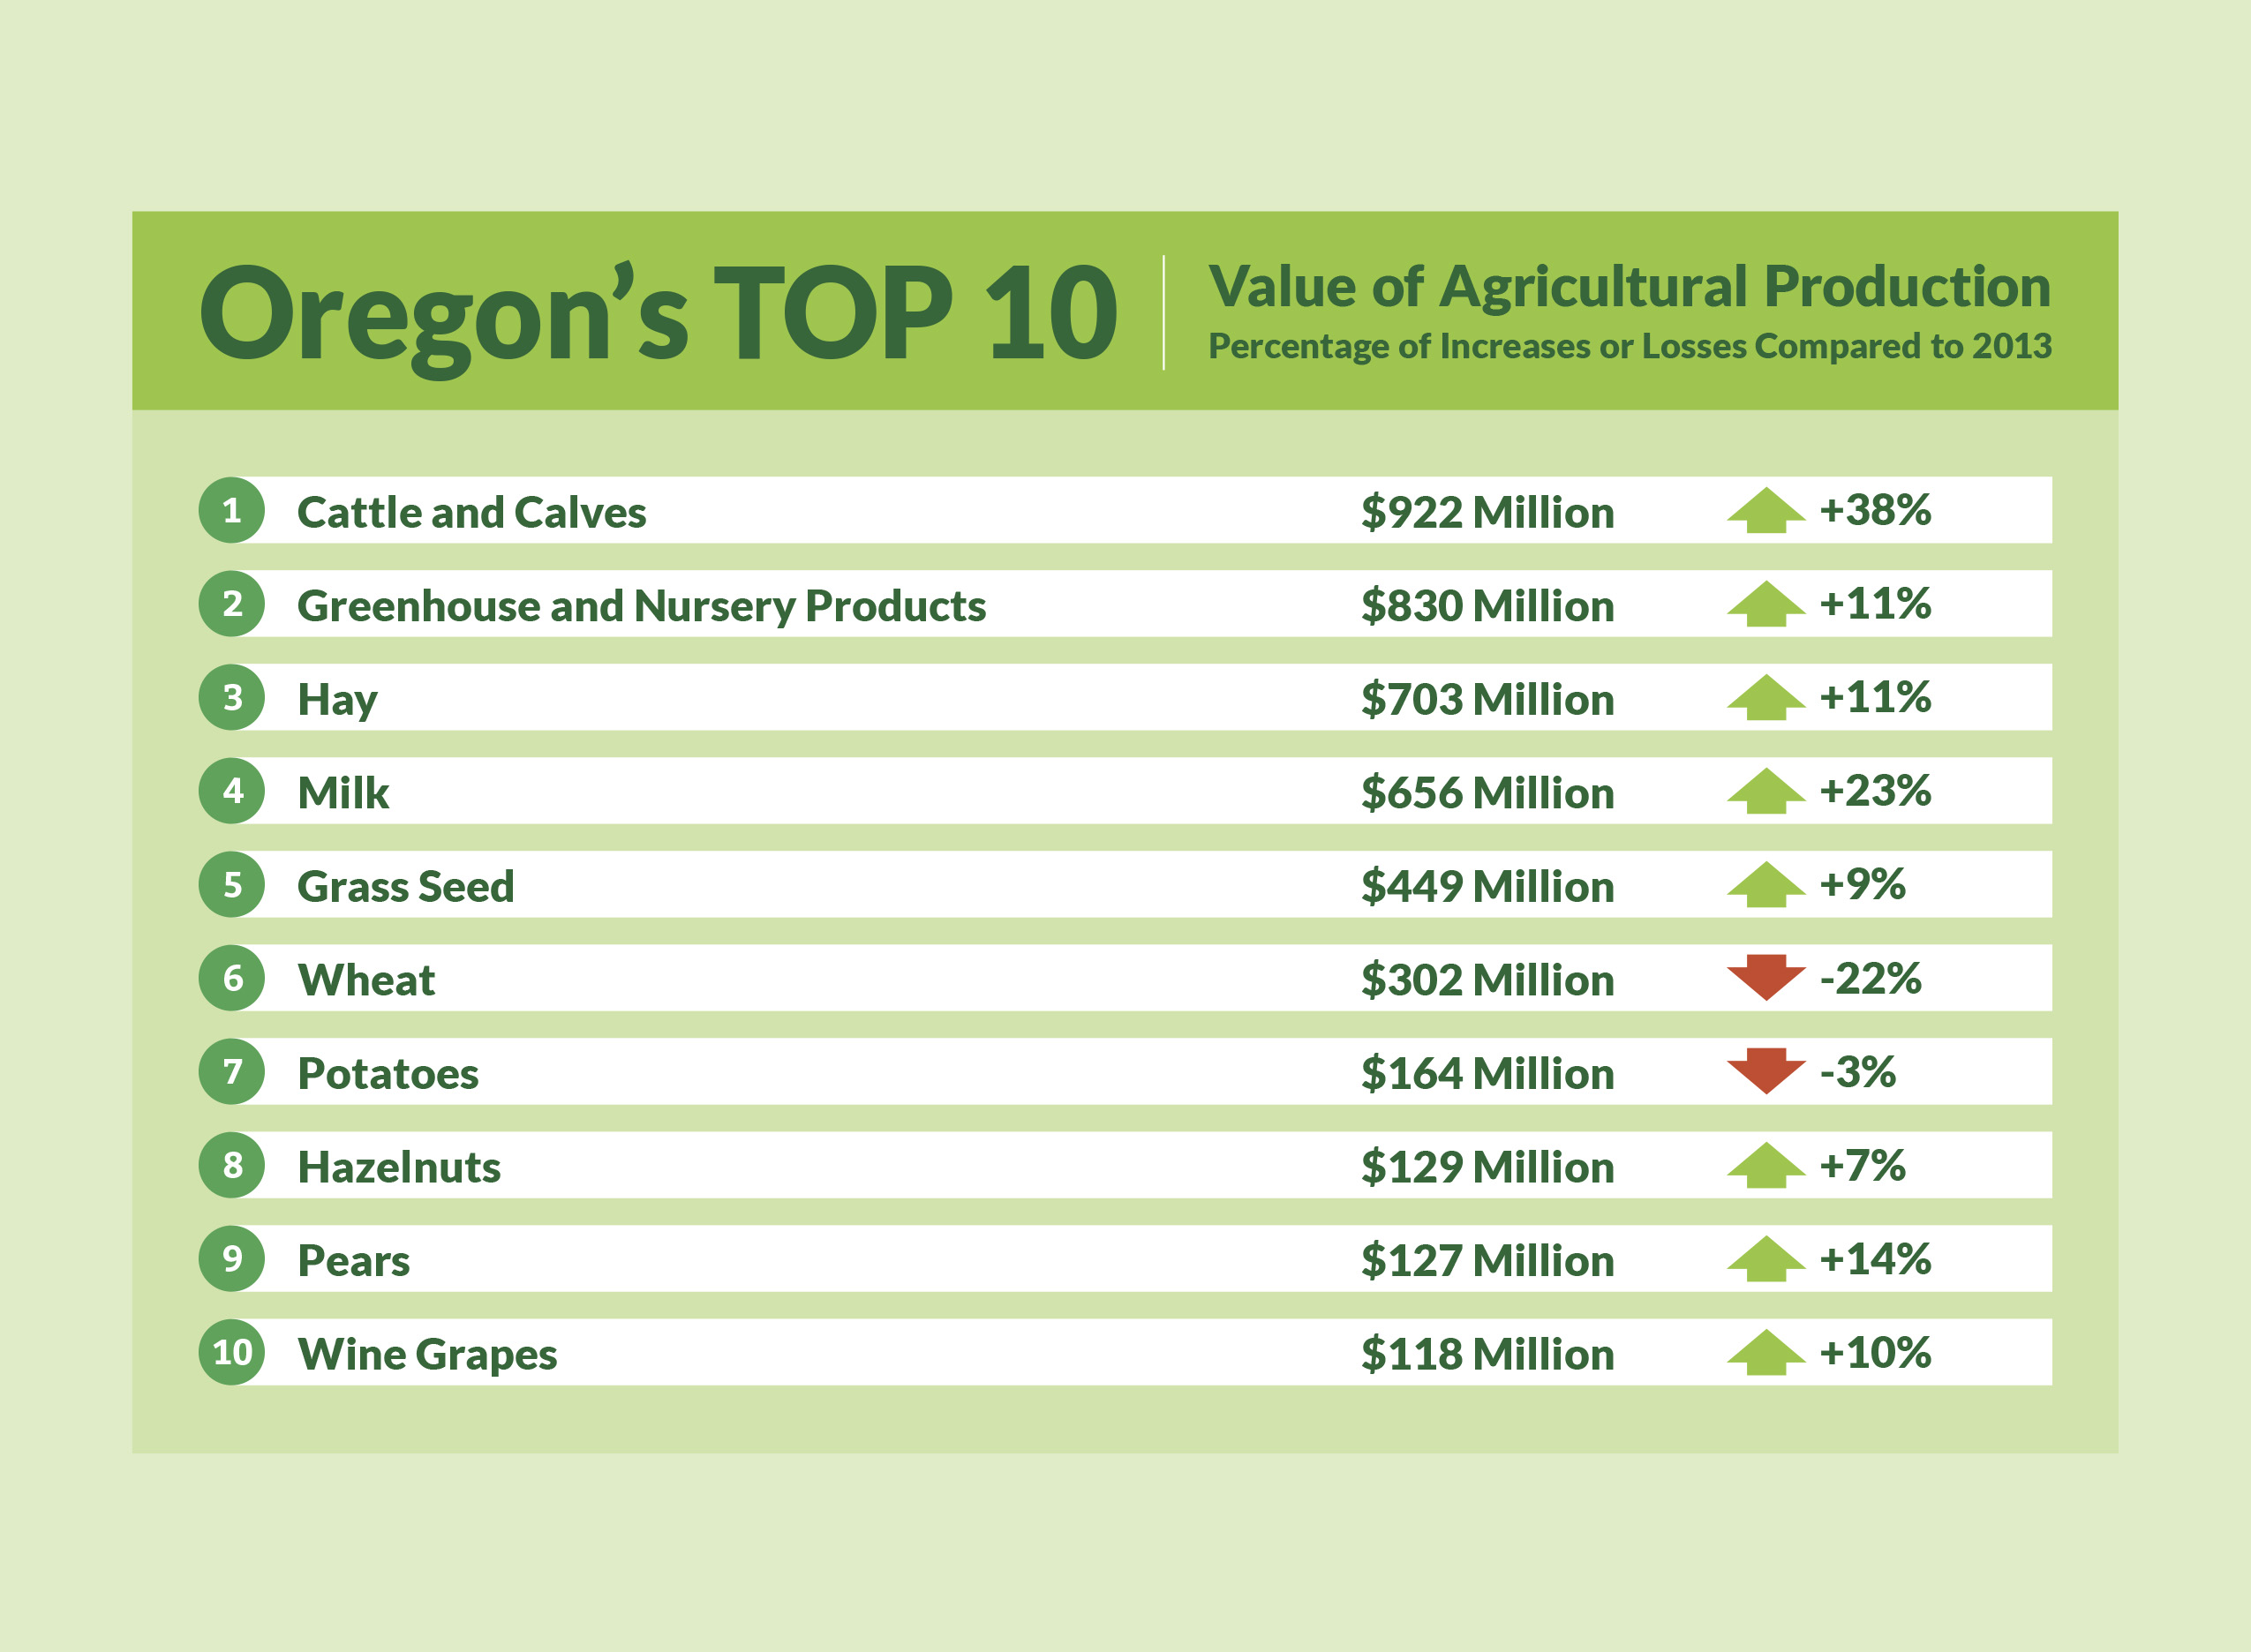 Oregon's Top 10 Crops